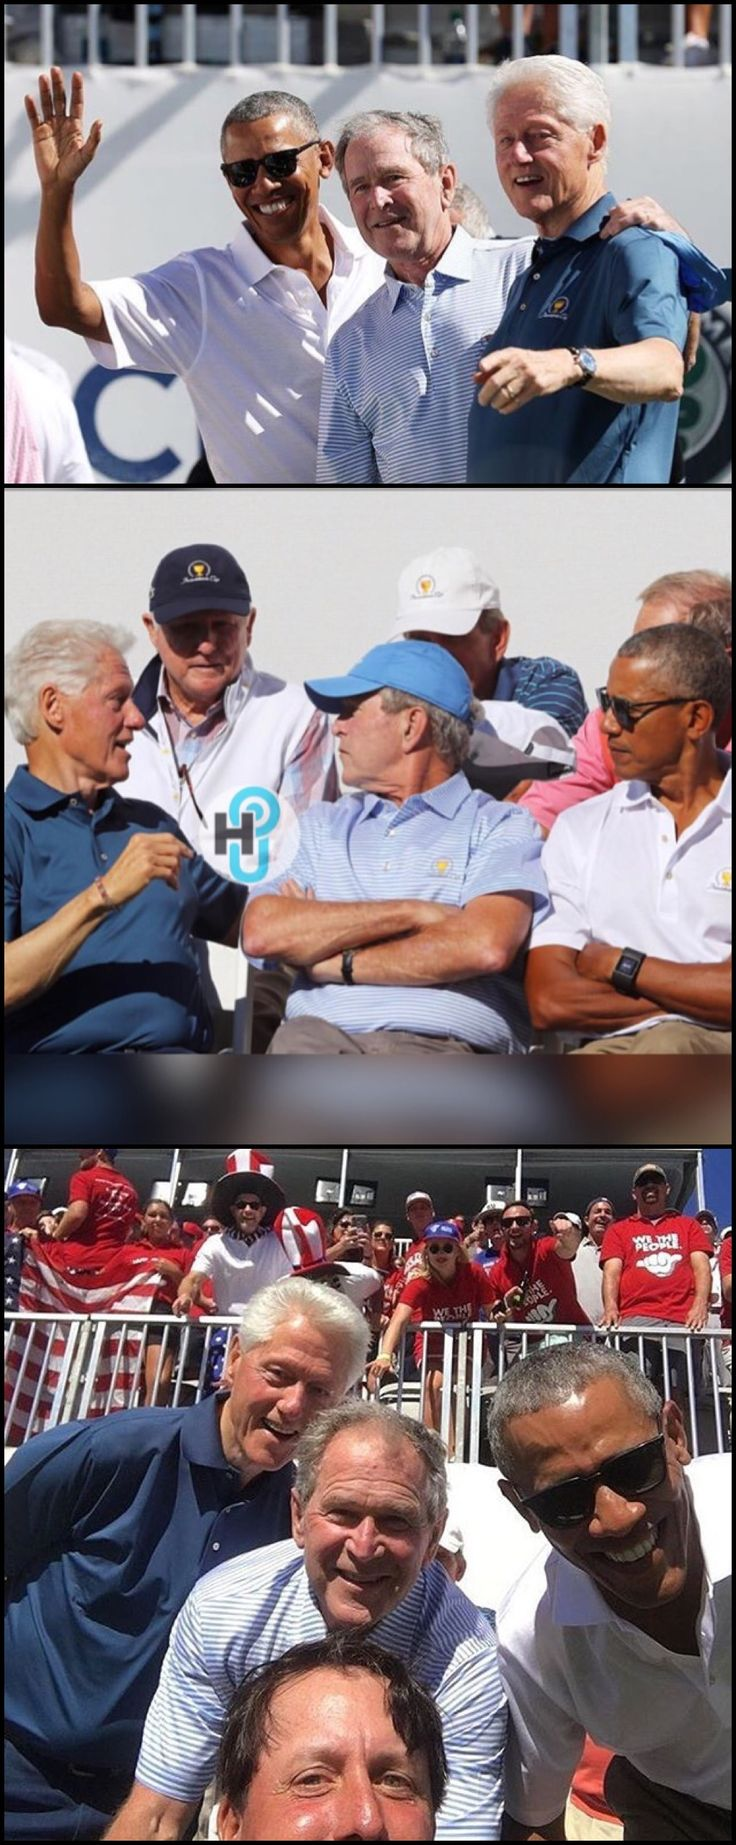 #Former #US #Presidents #BarackObama #BillClinton #GeorgeWBush ......I would take anyone of these in the White House  over what is living there now. Thought Bush wasn't that great until Trump walked in...